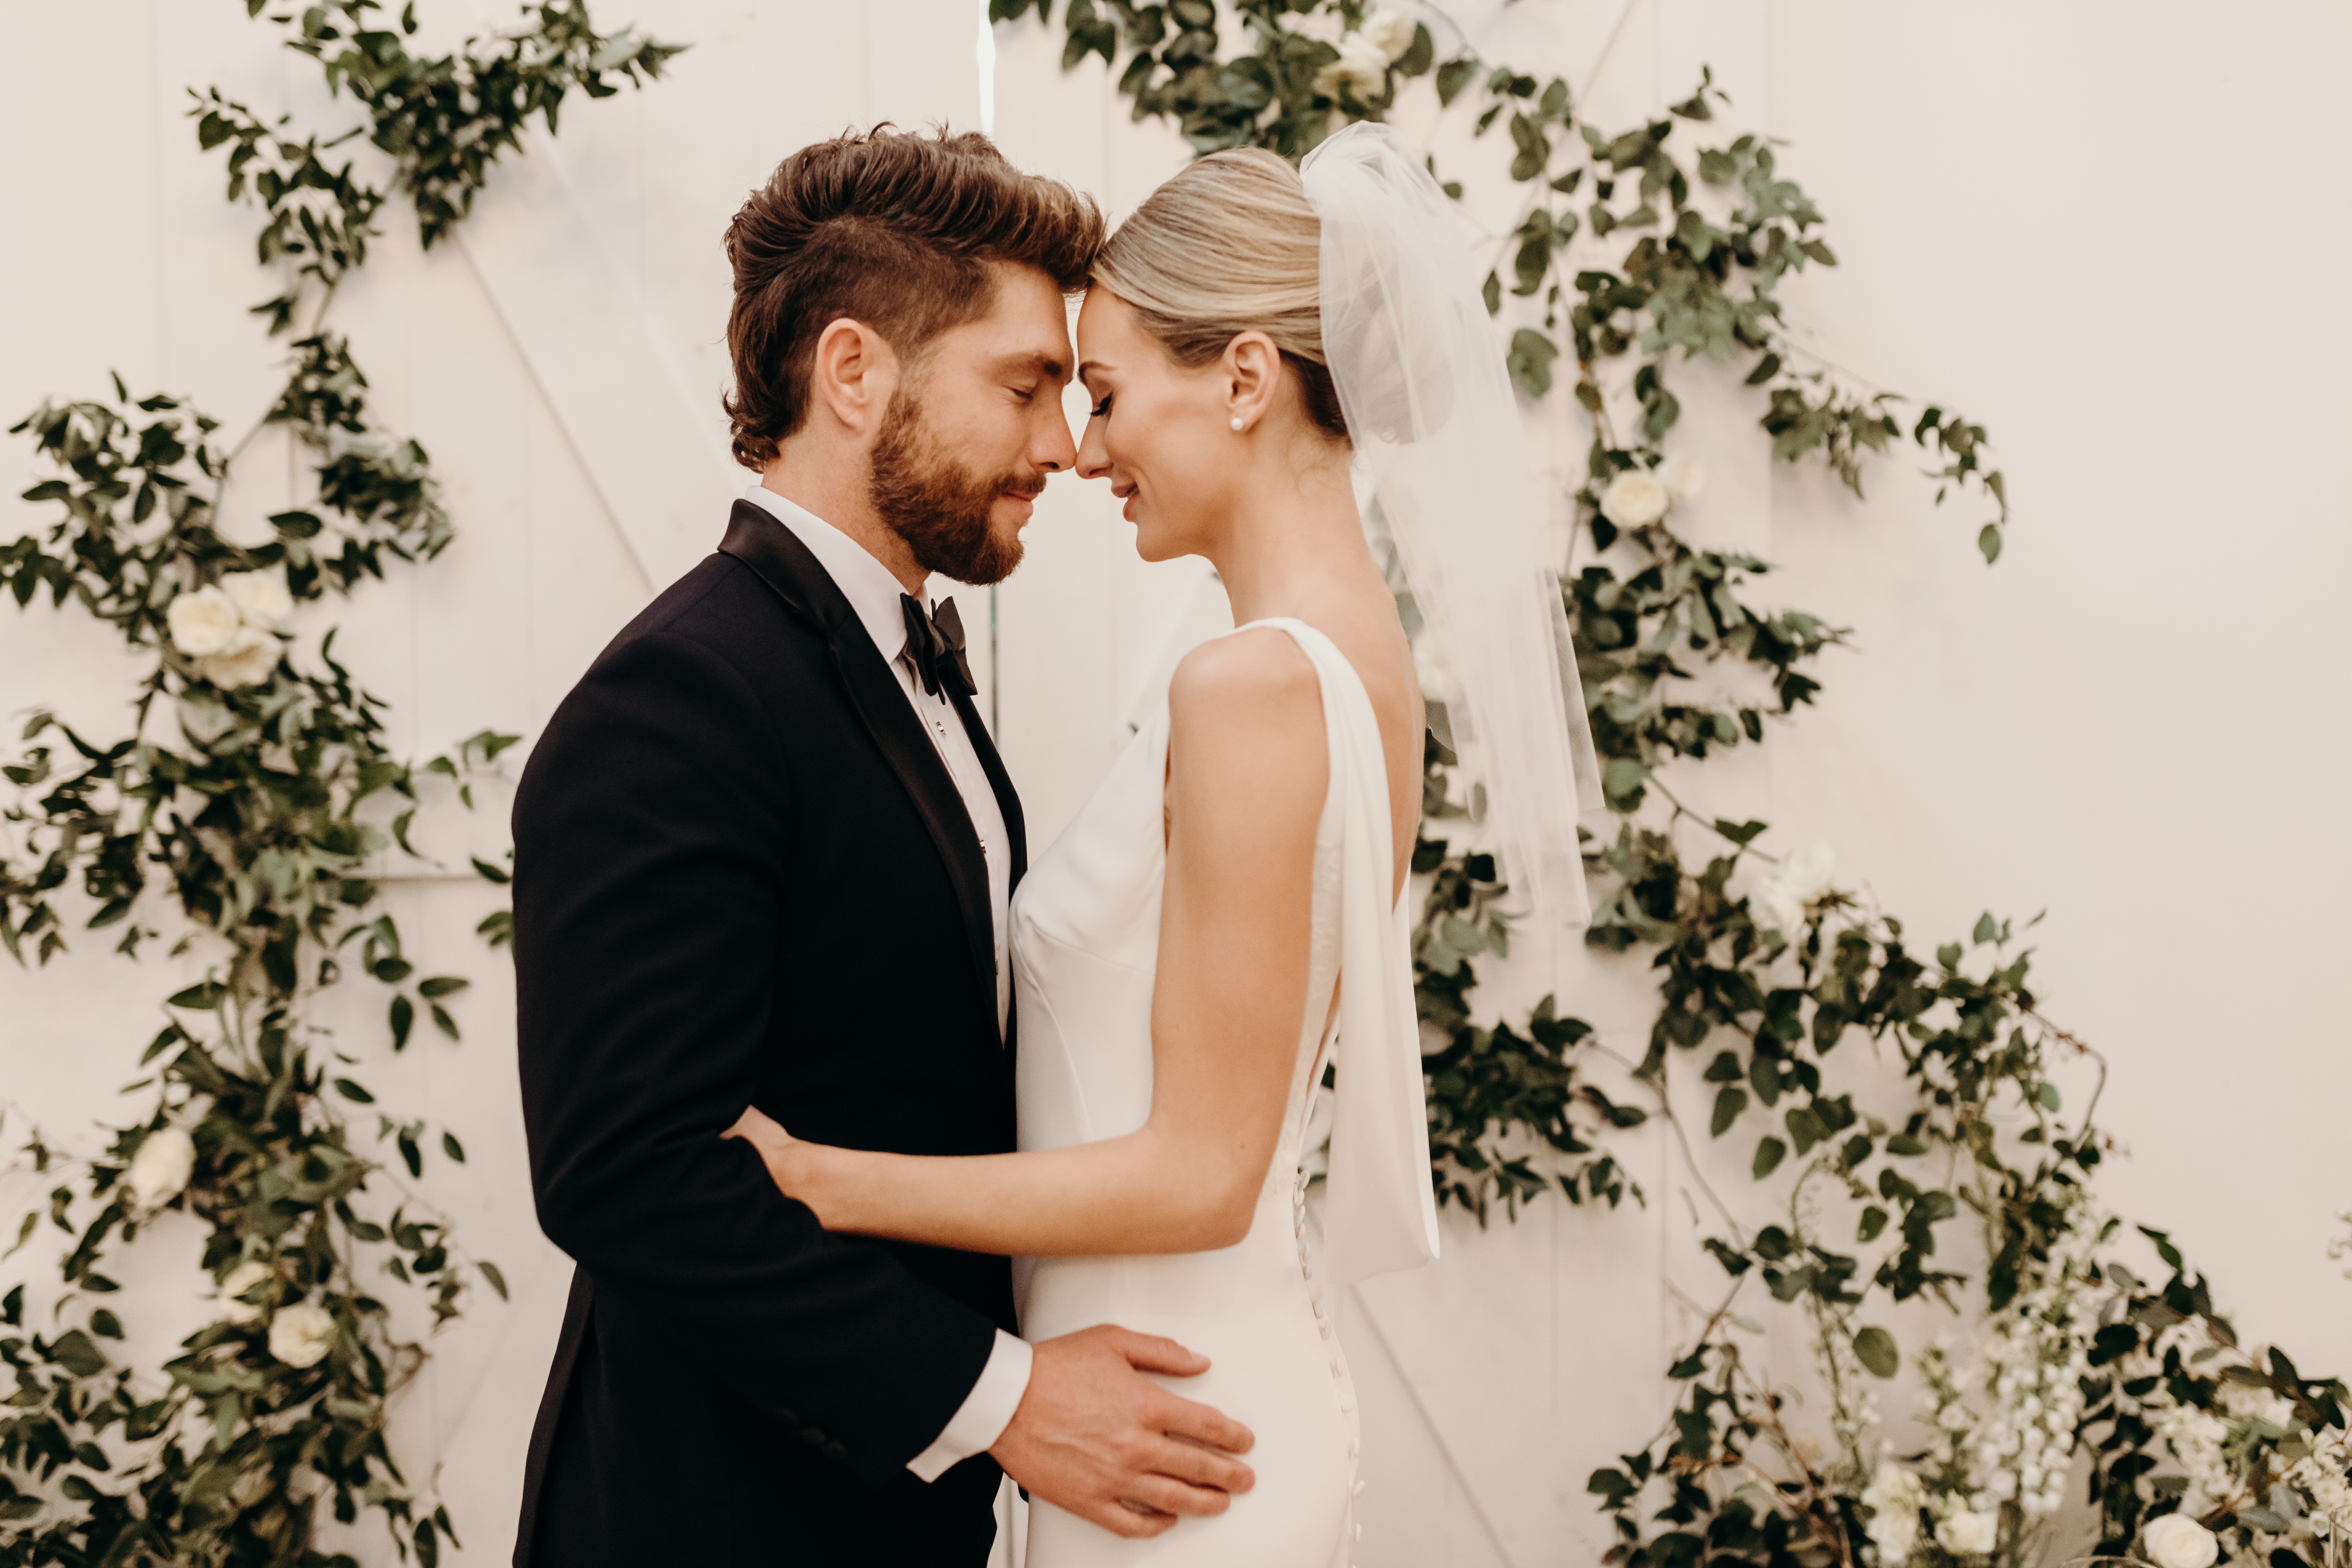 Lauren Bushnell and Chris Lane Nashville Wedding captured by Victoria Bonvinci